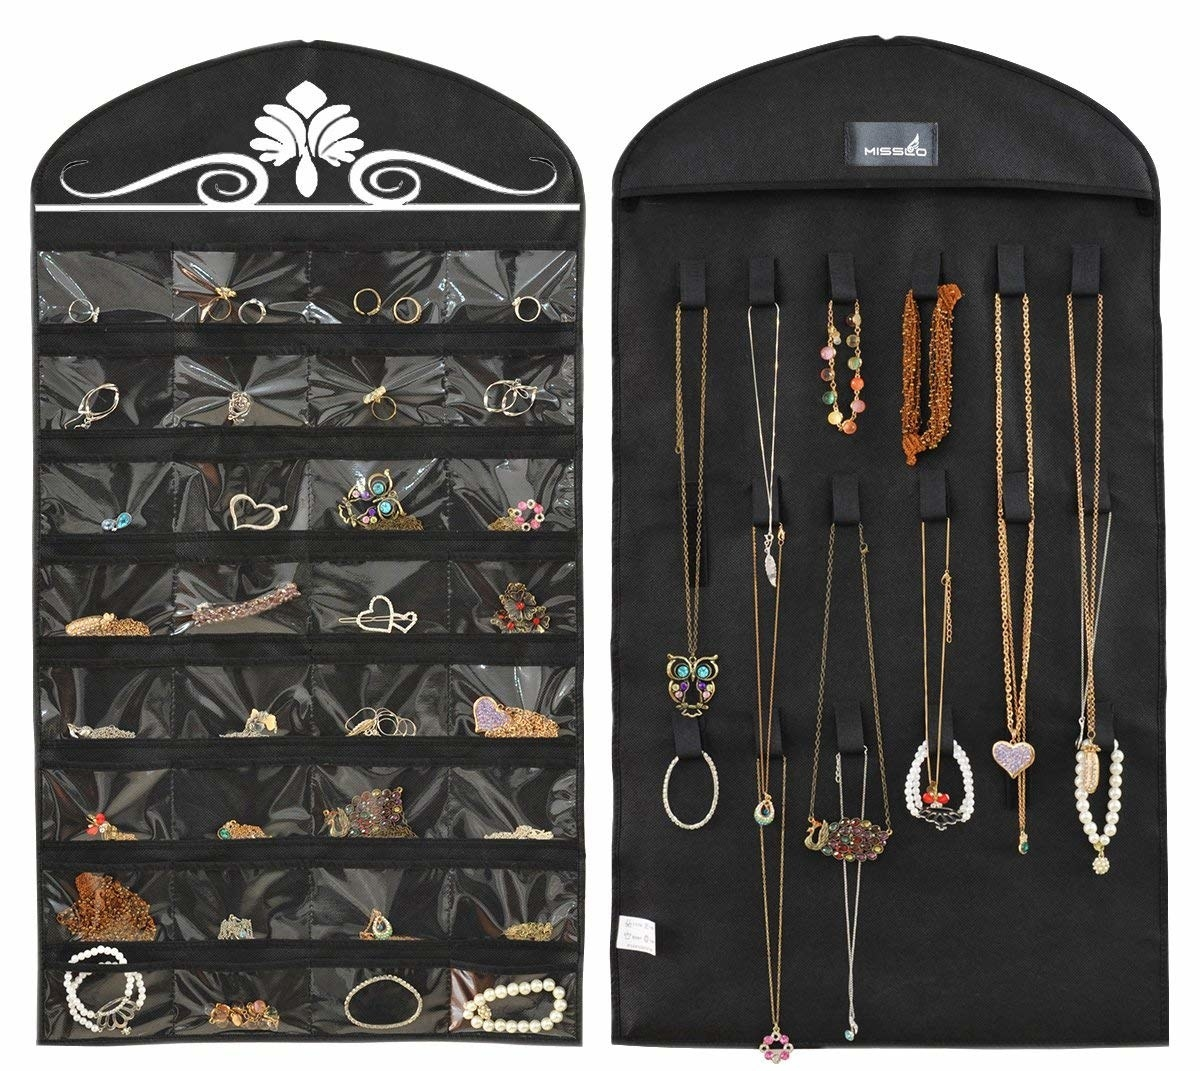 rings organized on one side of the misslo jewelry organizer and necklaces organized on the other side